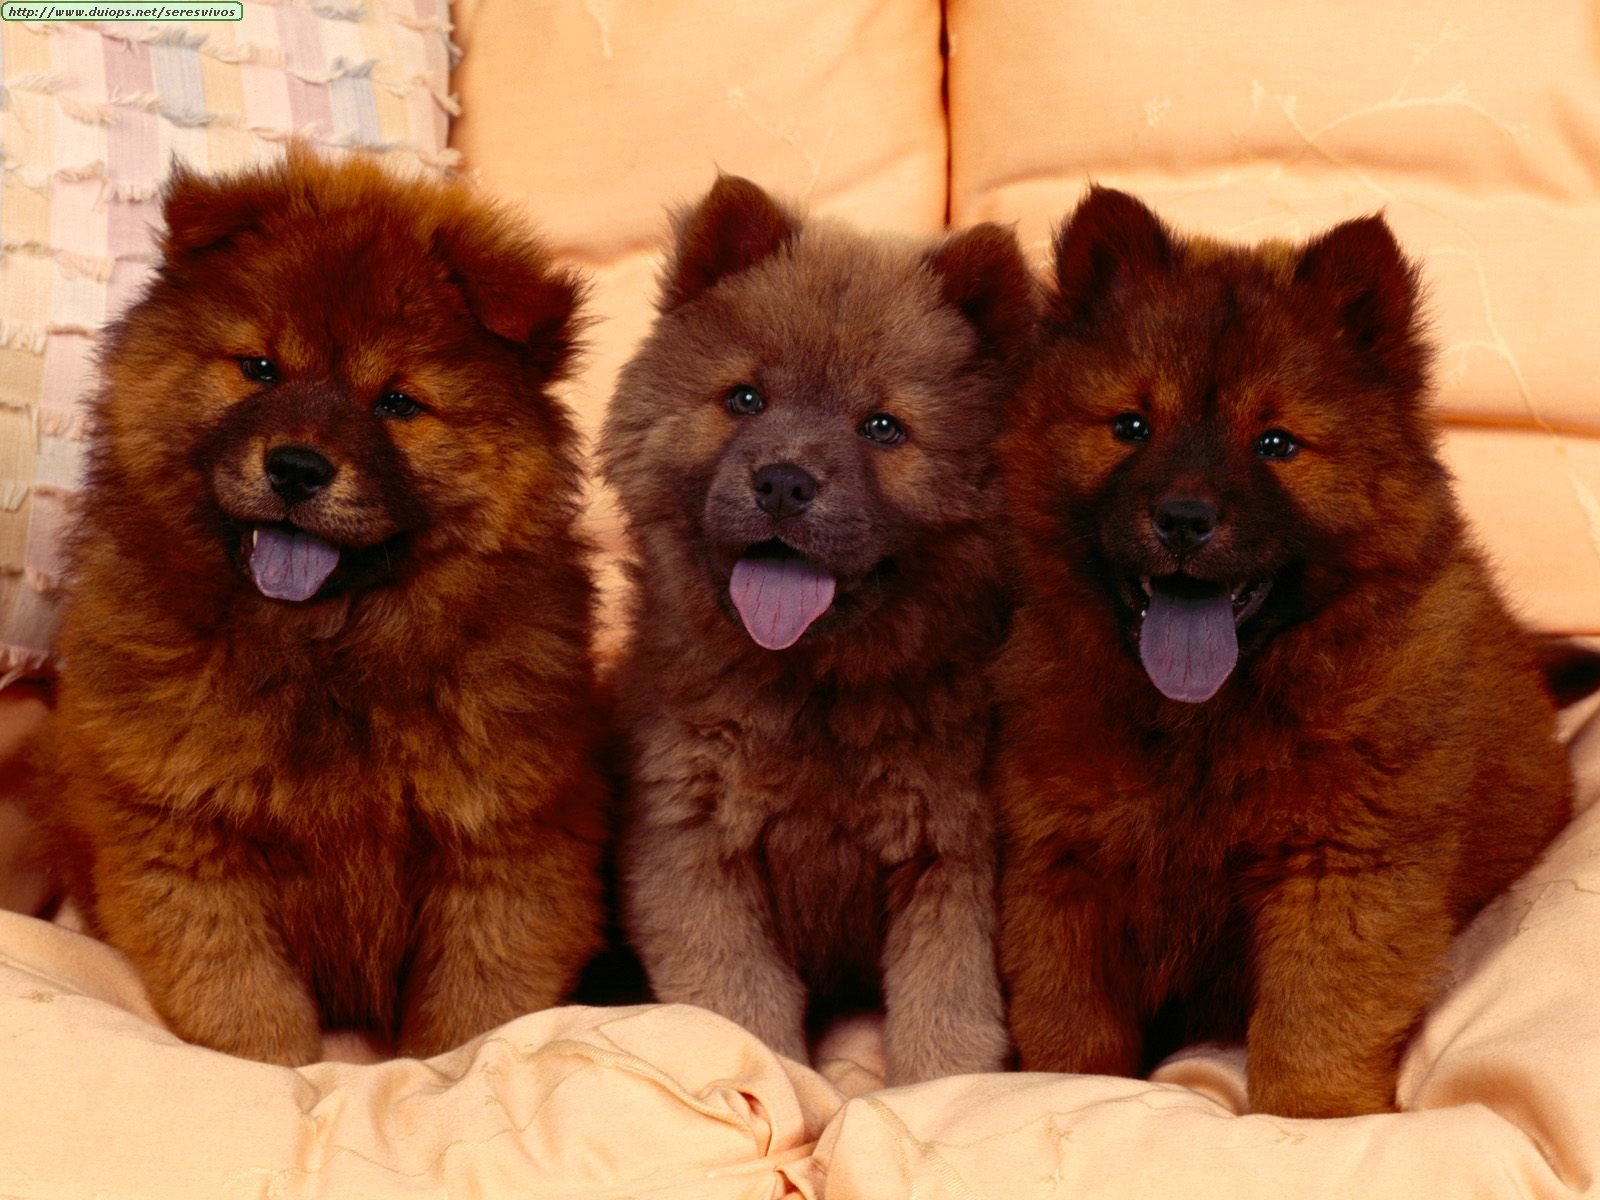 http://www.duiops.net/seresvivos/galeria/perros/Cozy%20Couch,%20Chow%20Chow%20Puppies.jpg